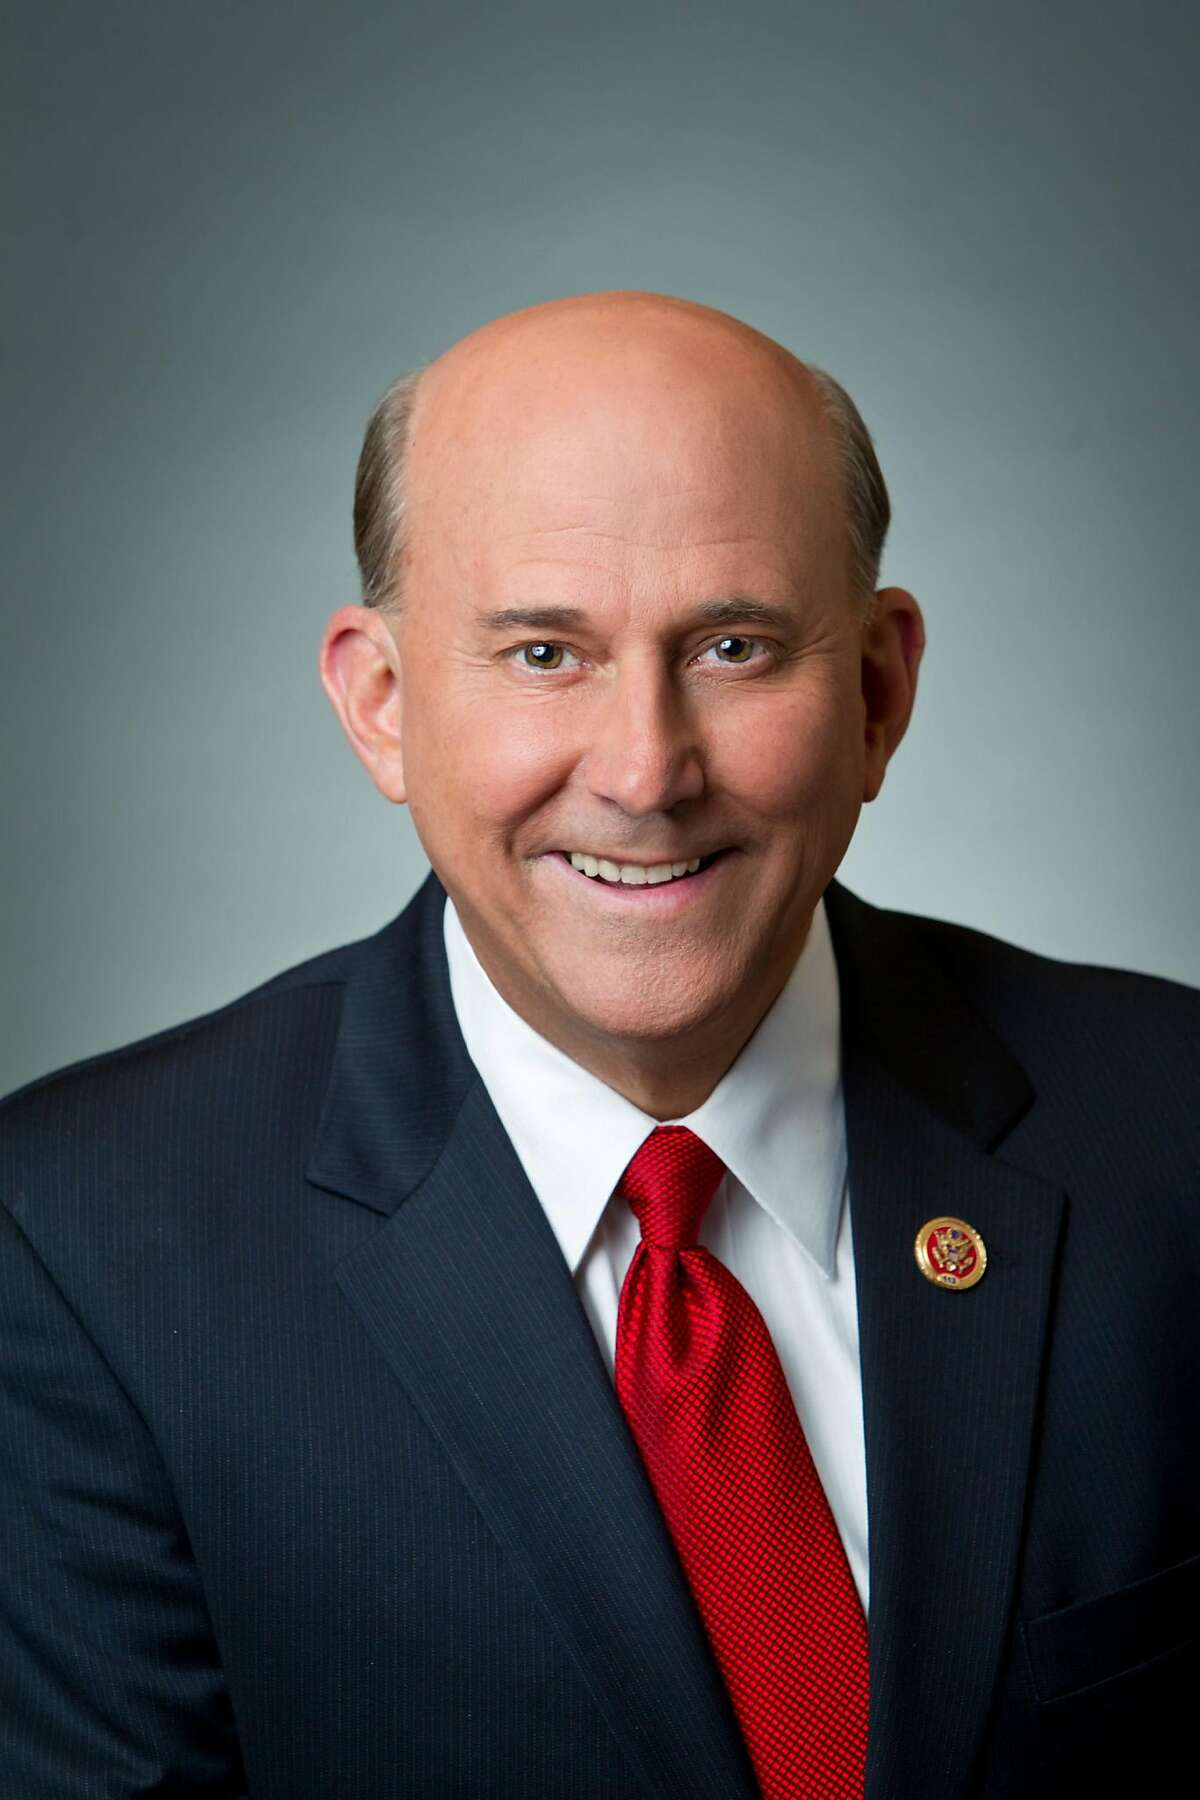 What getting elected Representative pays: $174,000/year Texas District 1 race Campaign contributions raised: Louie Gohmert, R: $569,033 Shirley McKellar, D (not pictured): $26,539